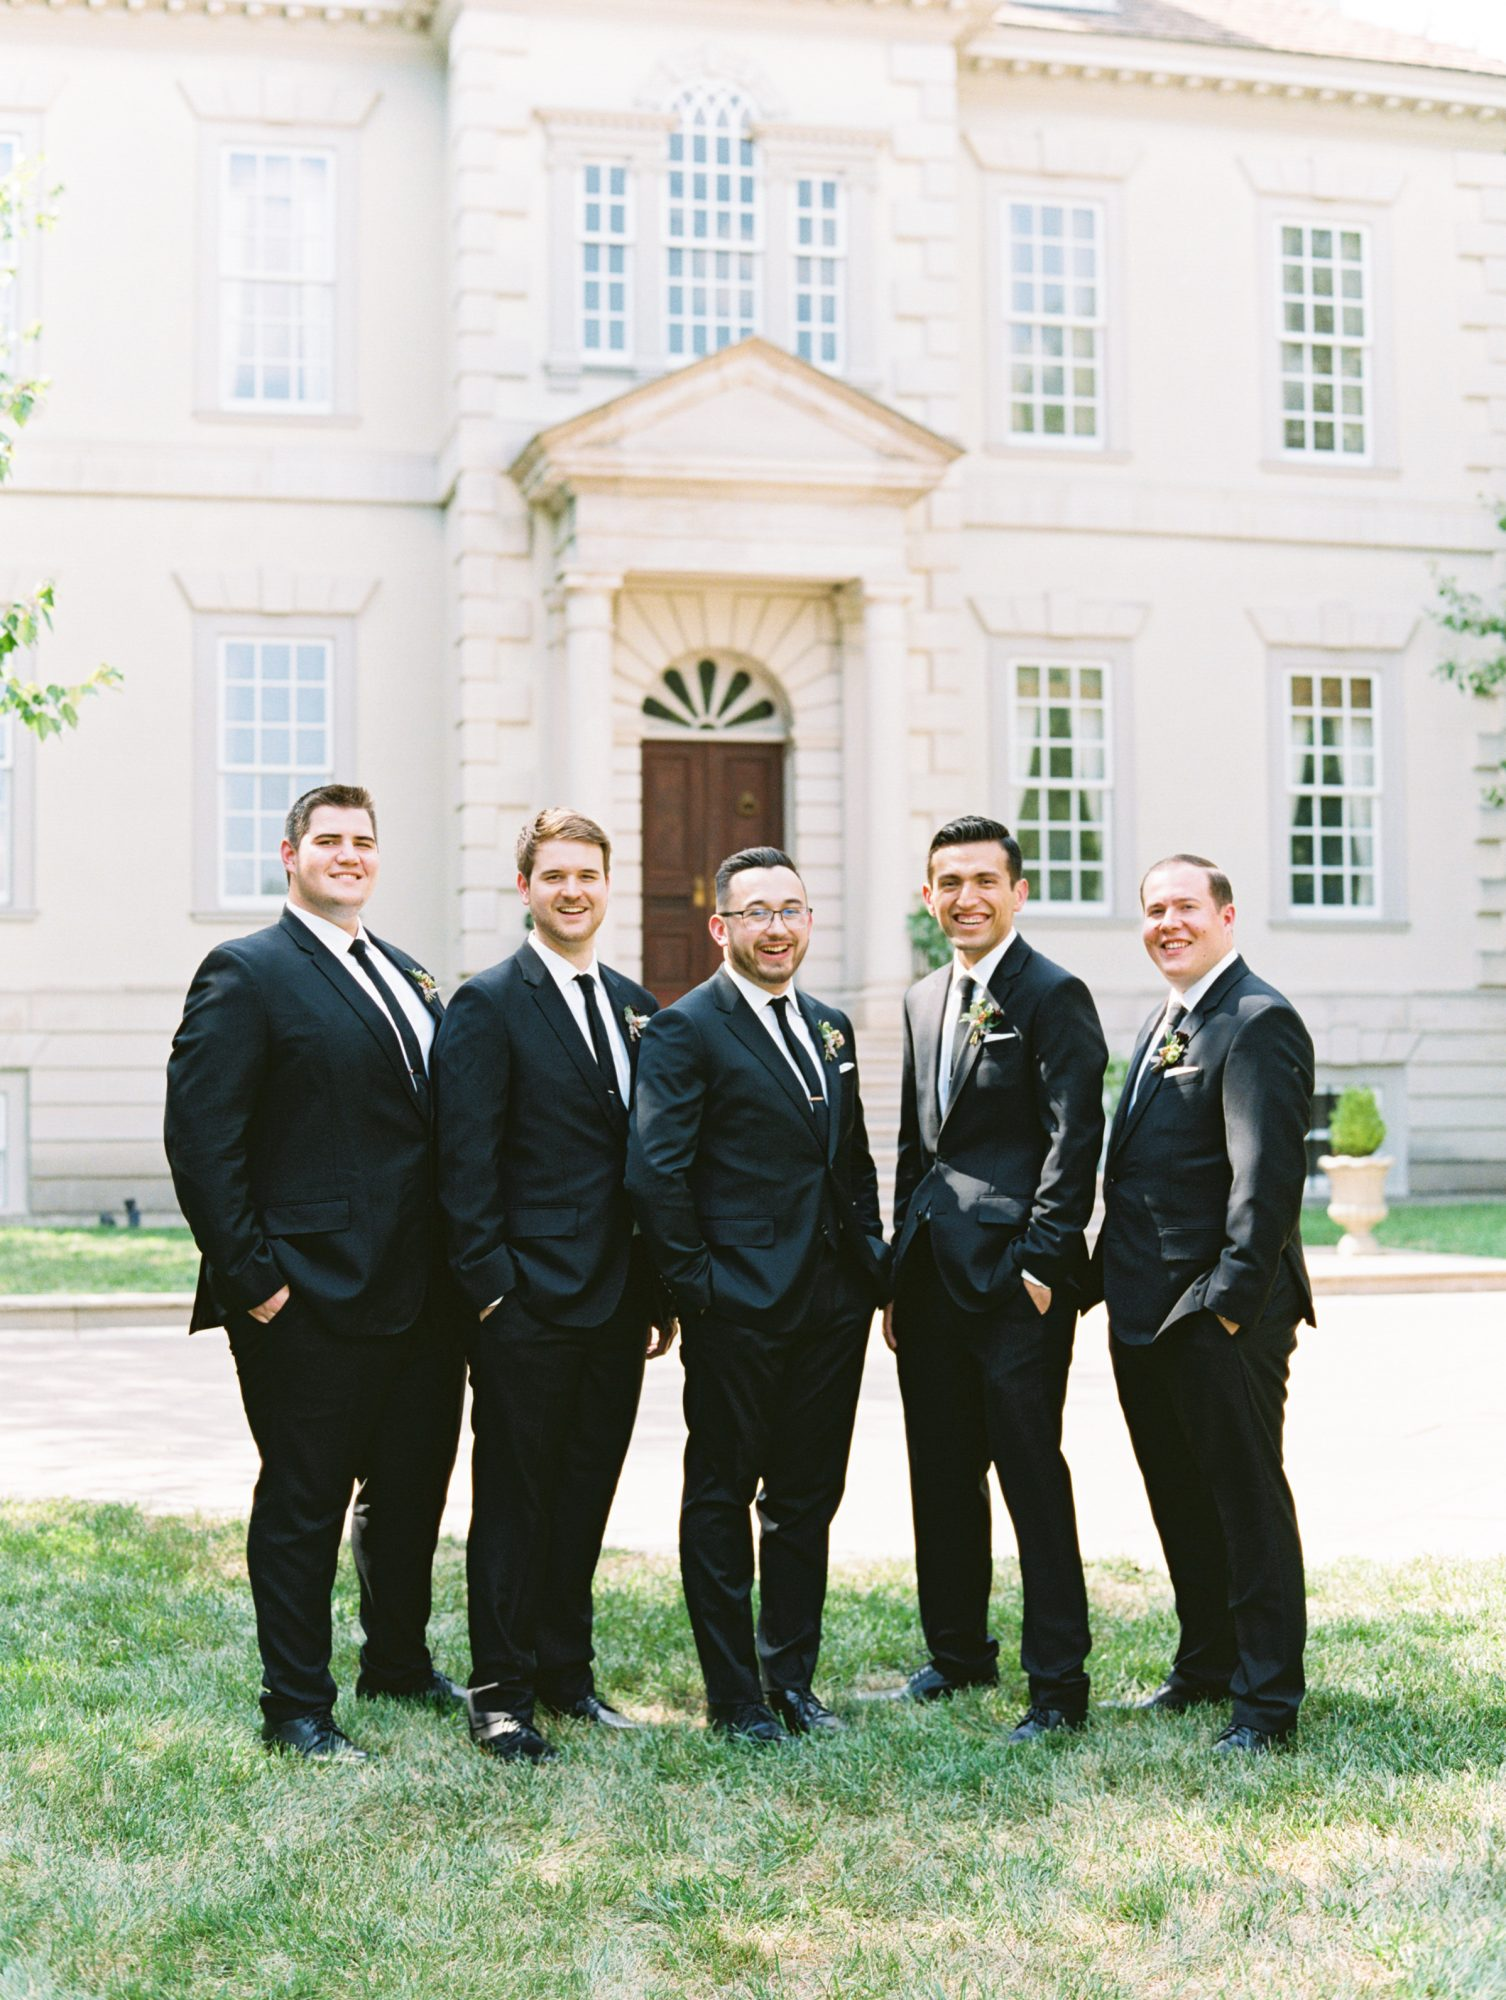 katelyn jose wedding groom and groomsmen posing in tuxedos